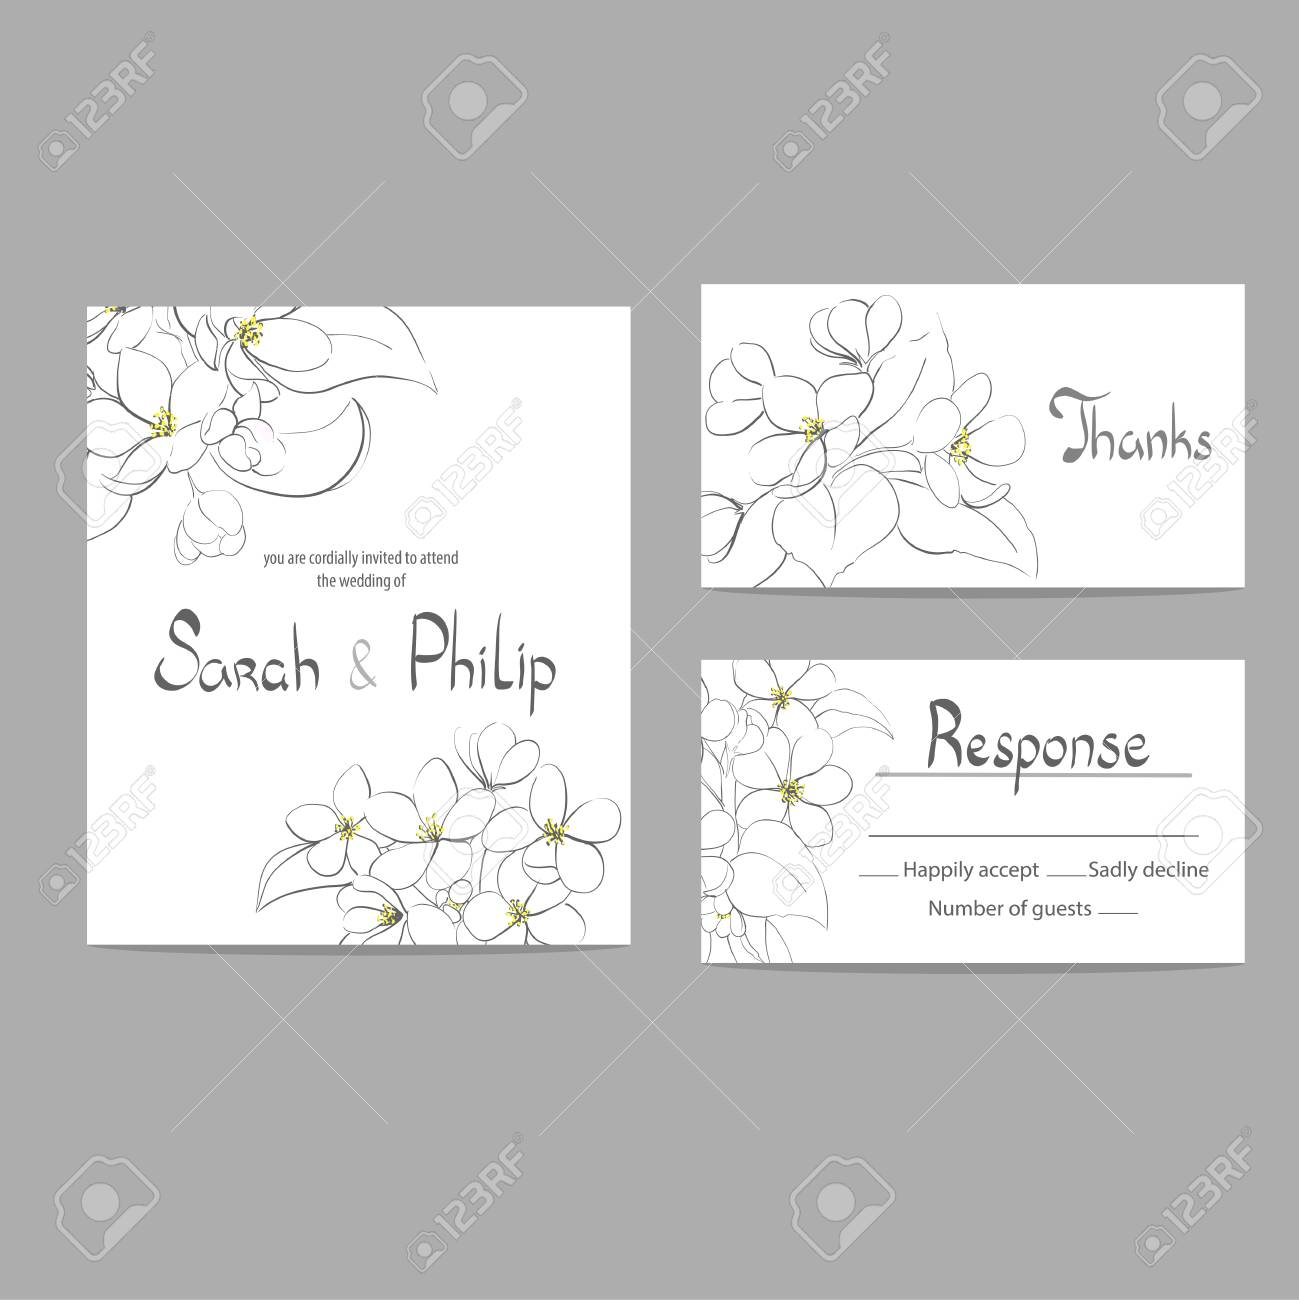 Bright Floral Wedding Invitation Card Template Royalty Free Cliparts ...